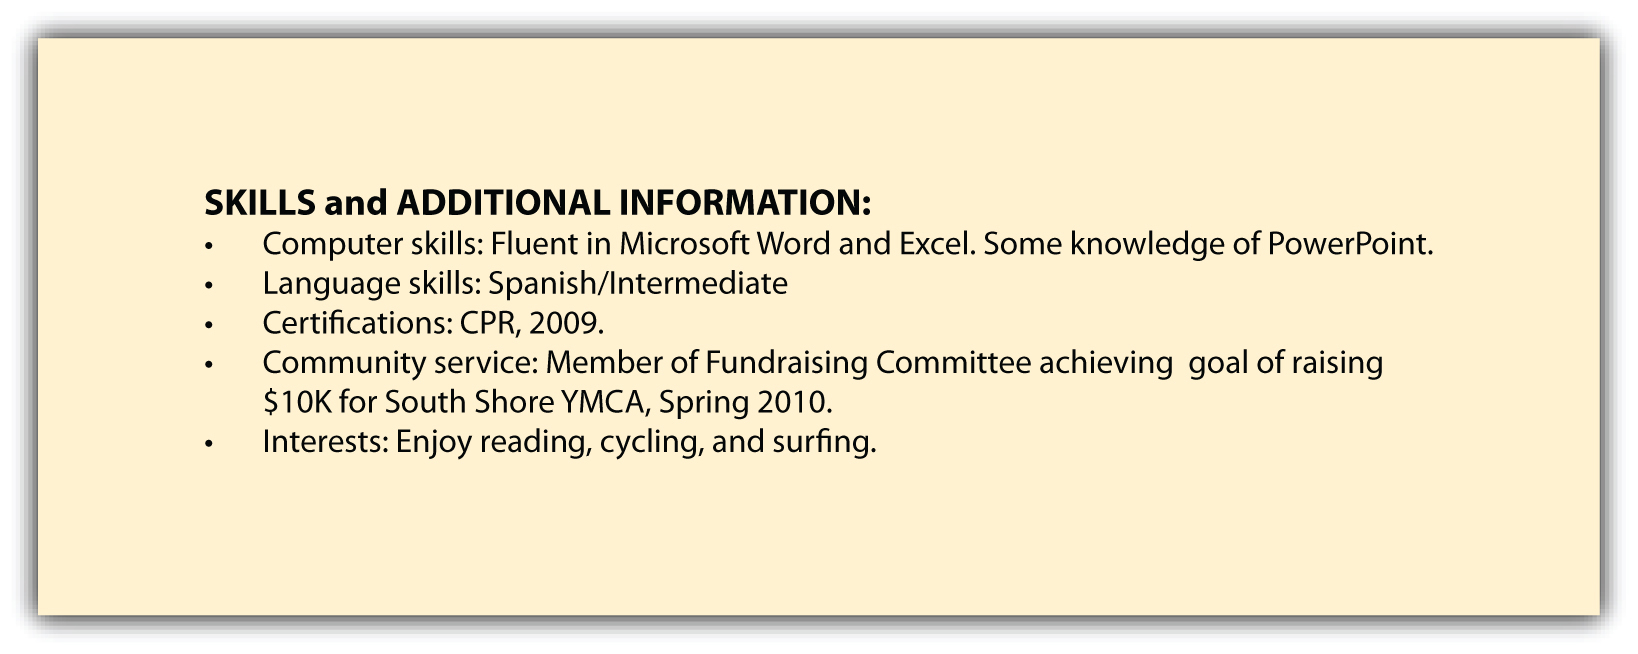 skills additional information and references common interests for resume vocabulary ideas Resume Common Interests For Resume